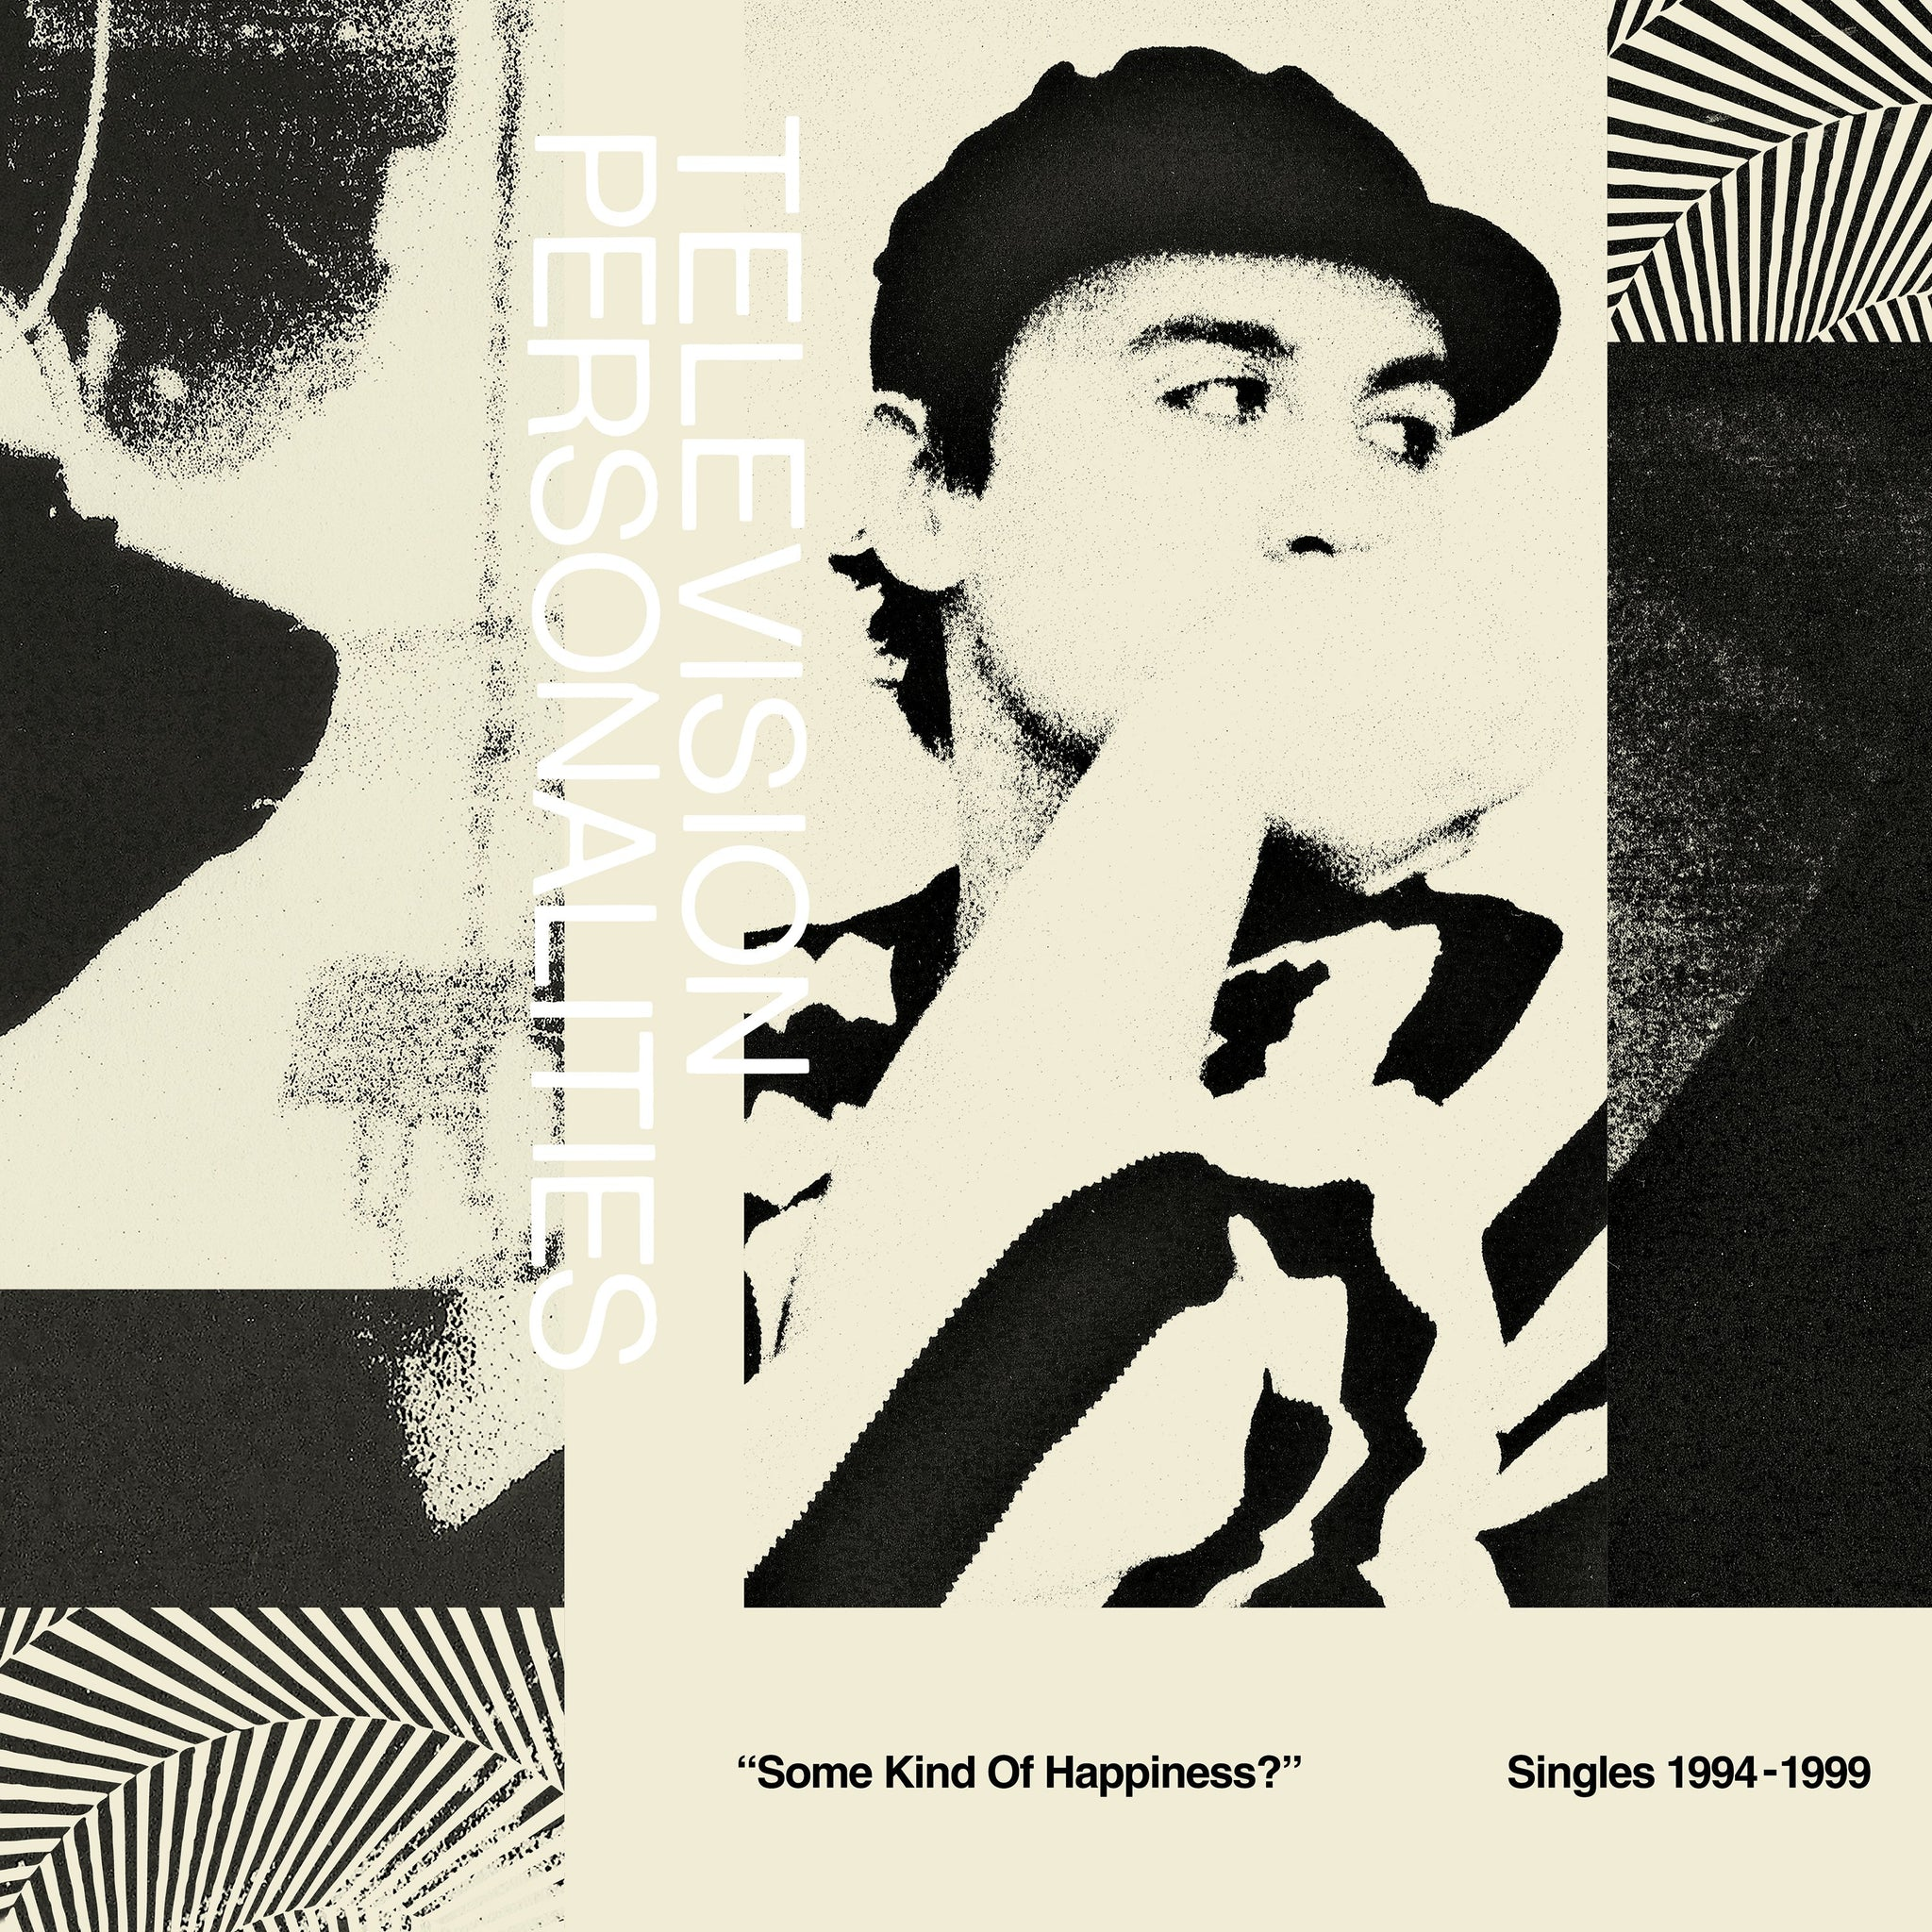 Television Personalities - Some Kind of Happiness: Singles 1995-1999